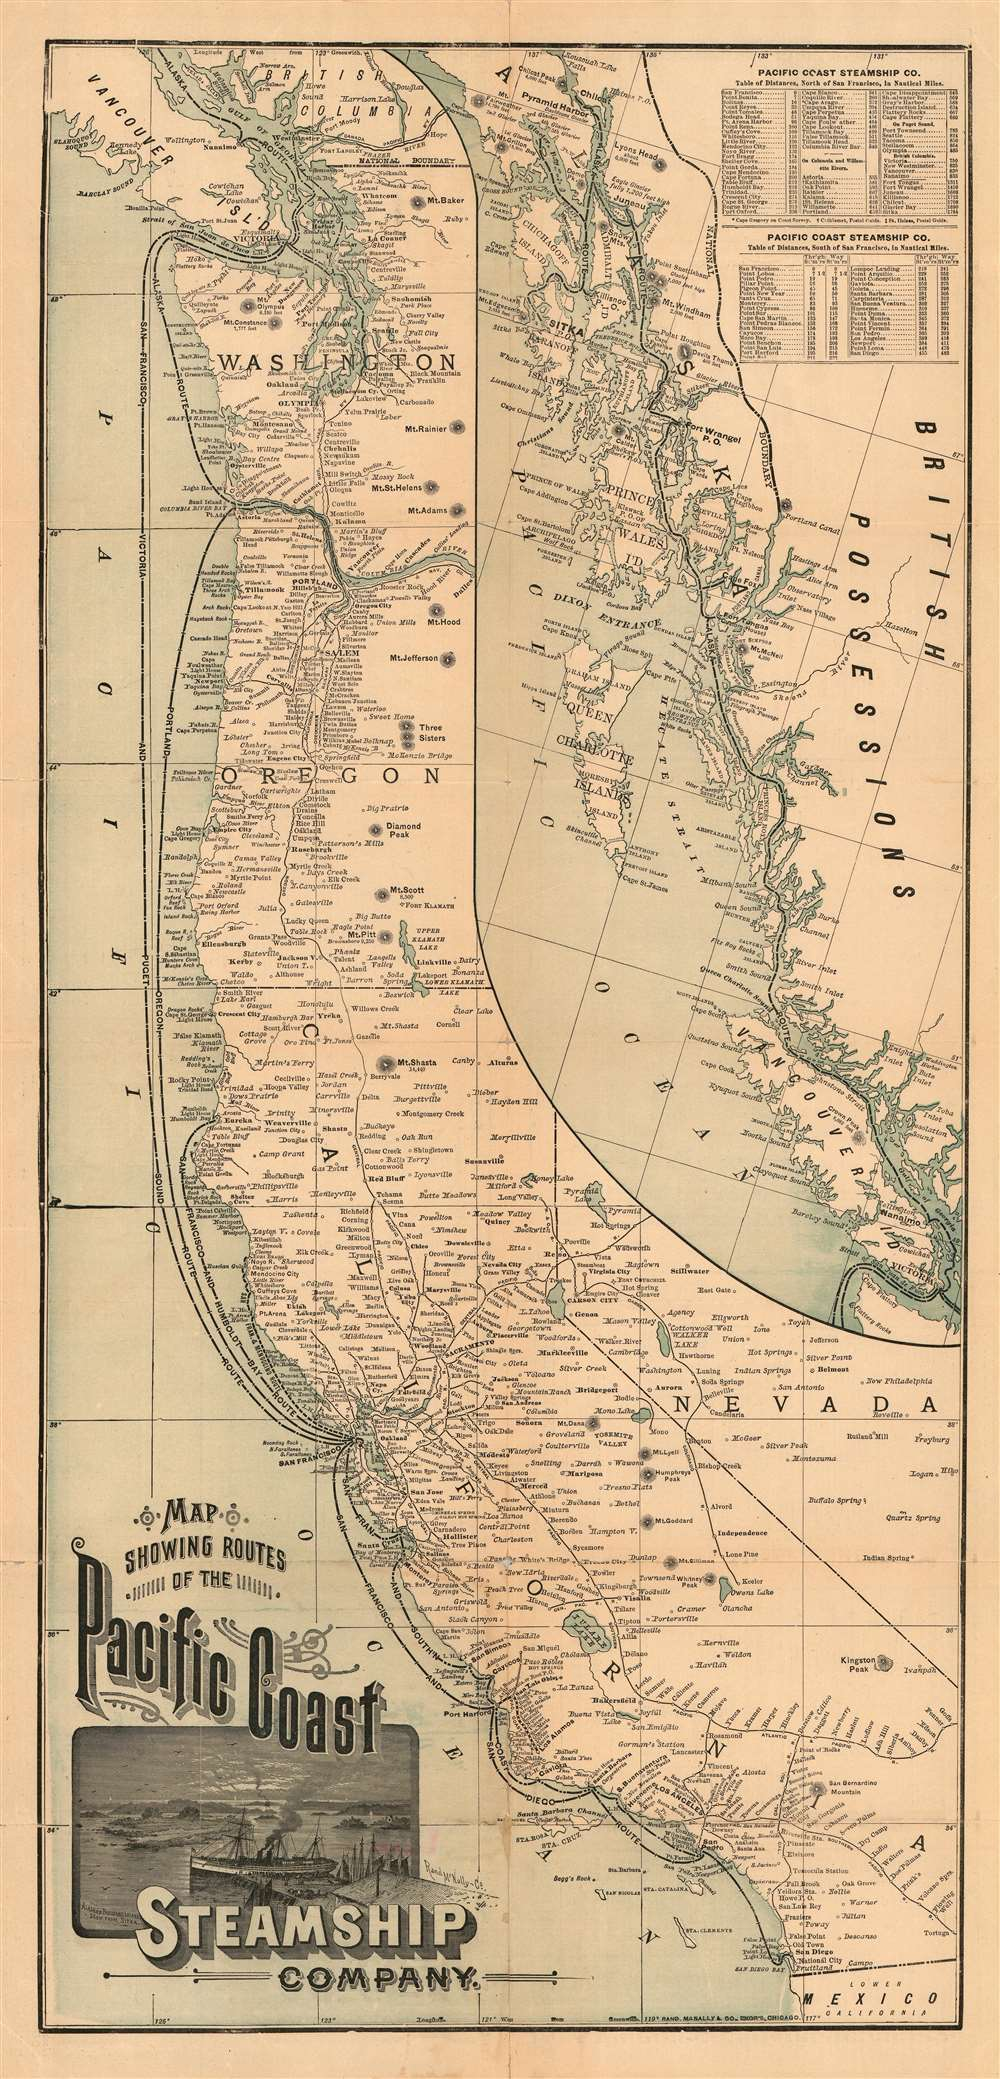 Map Showing Routes of the Pacific Coast Steamship Company. - Main View